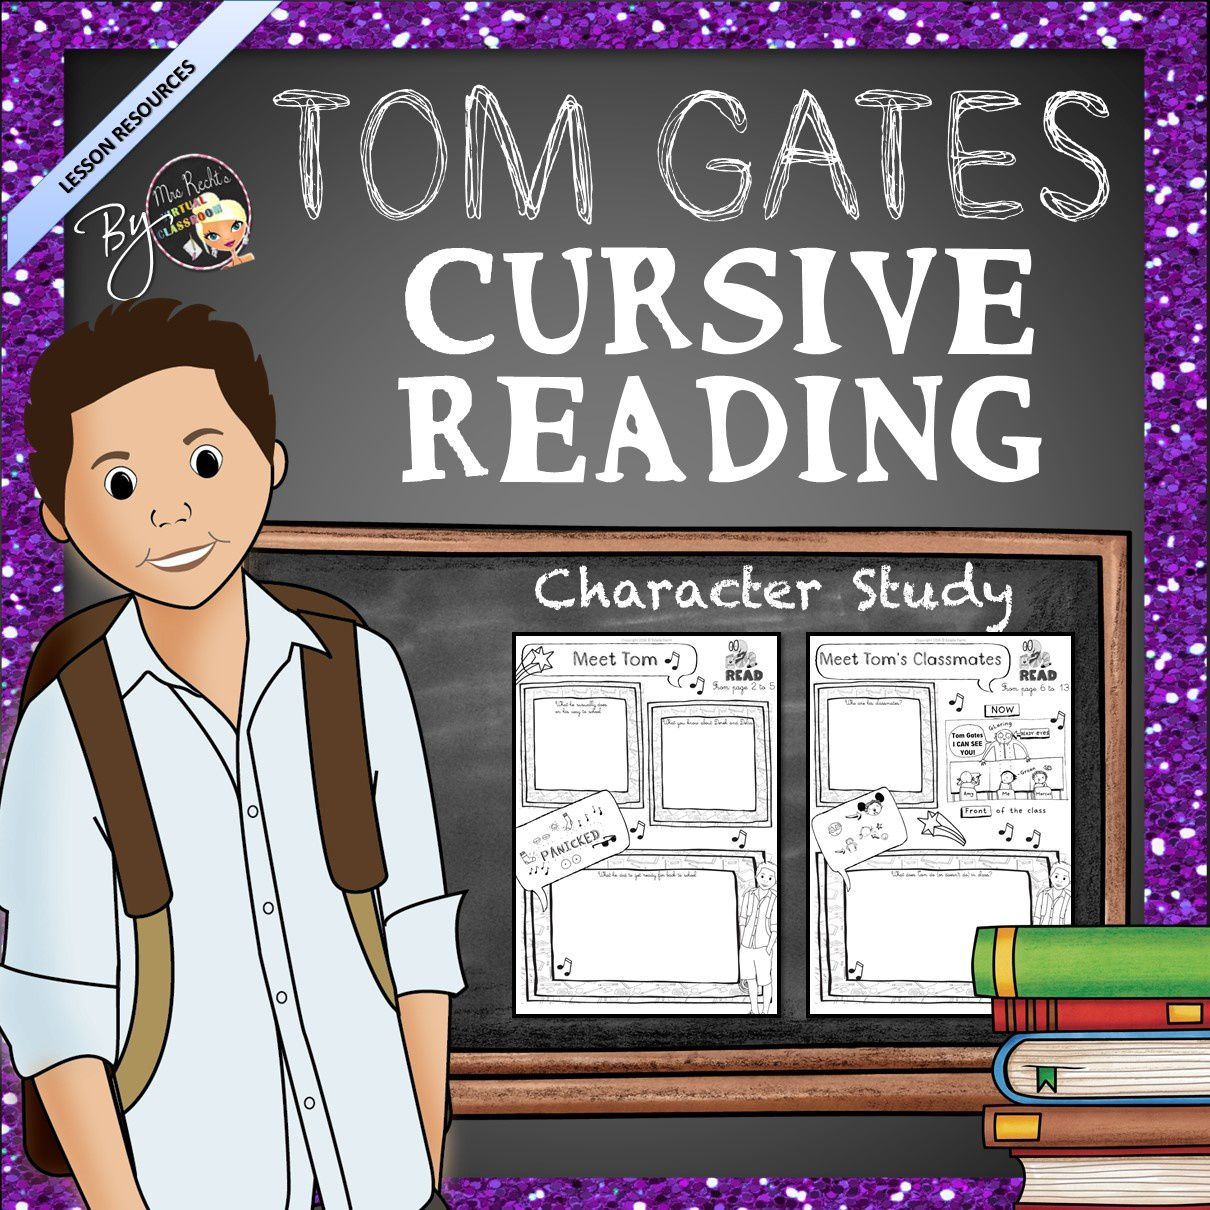 Back to school with Tom Gates